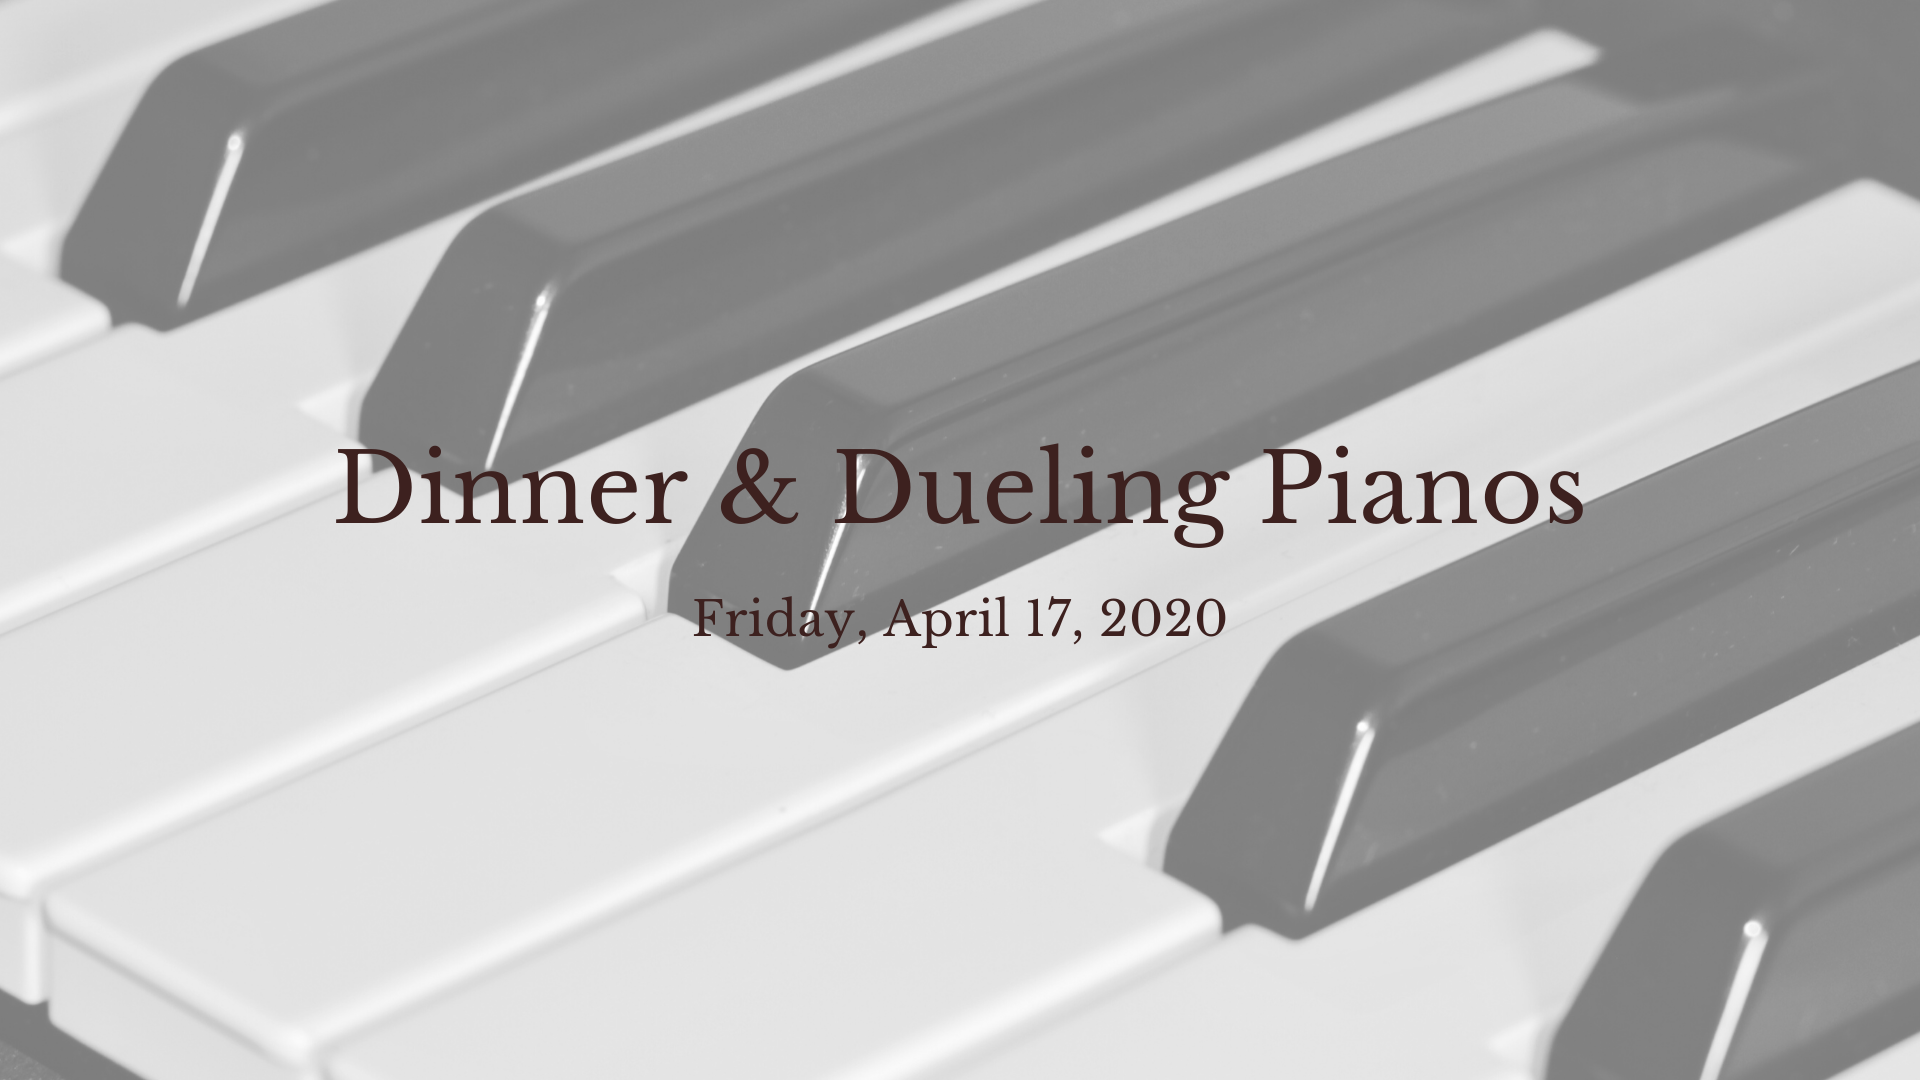 Dinner Theatre - Dueling Pianos